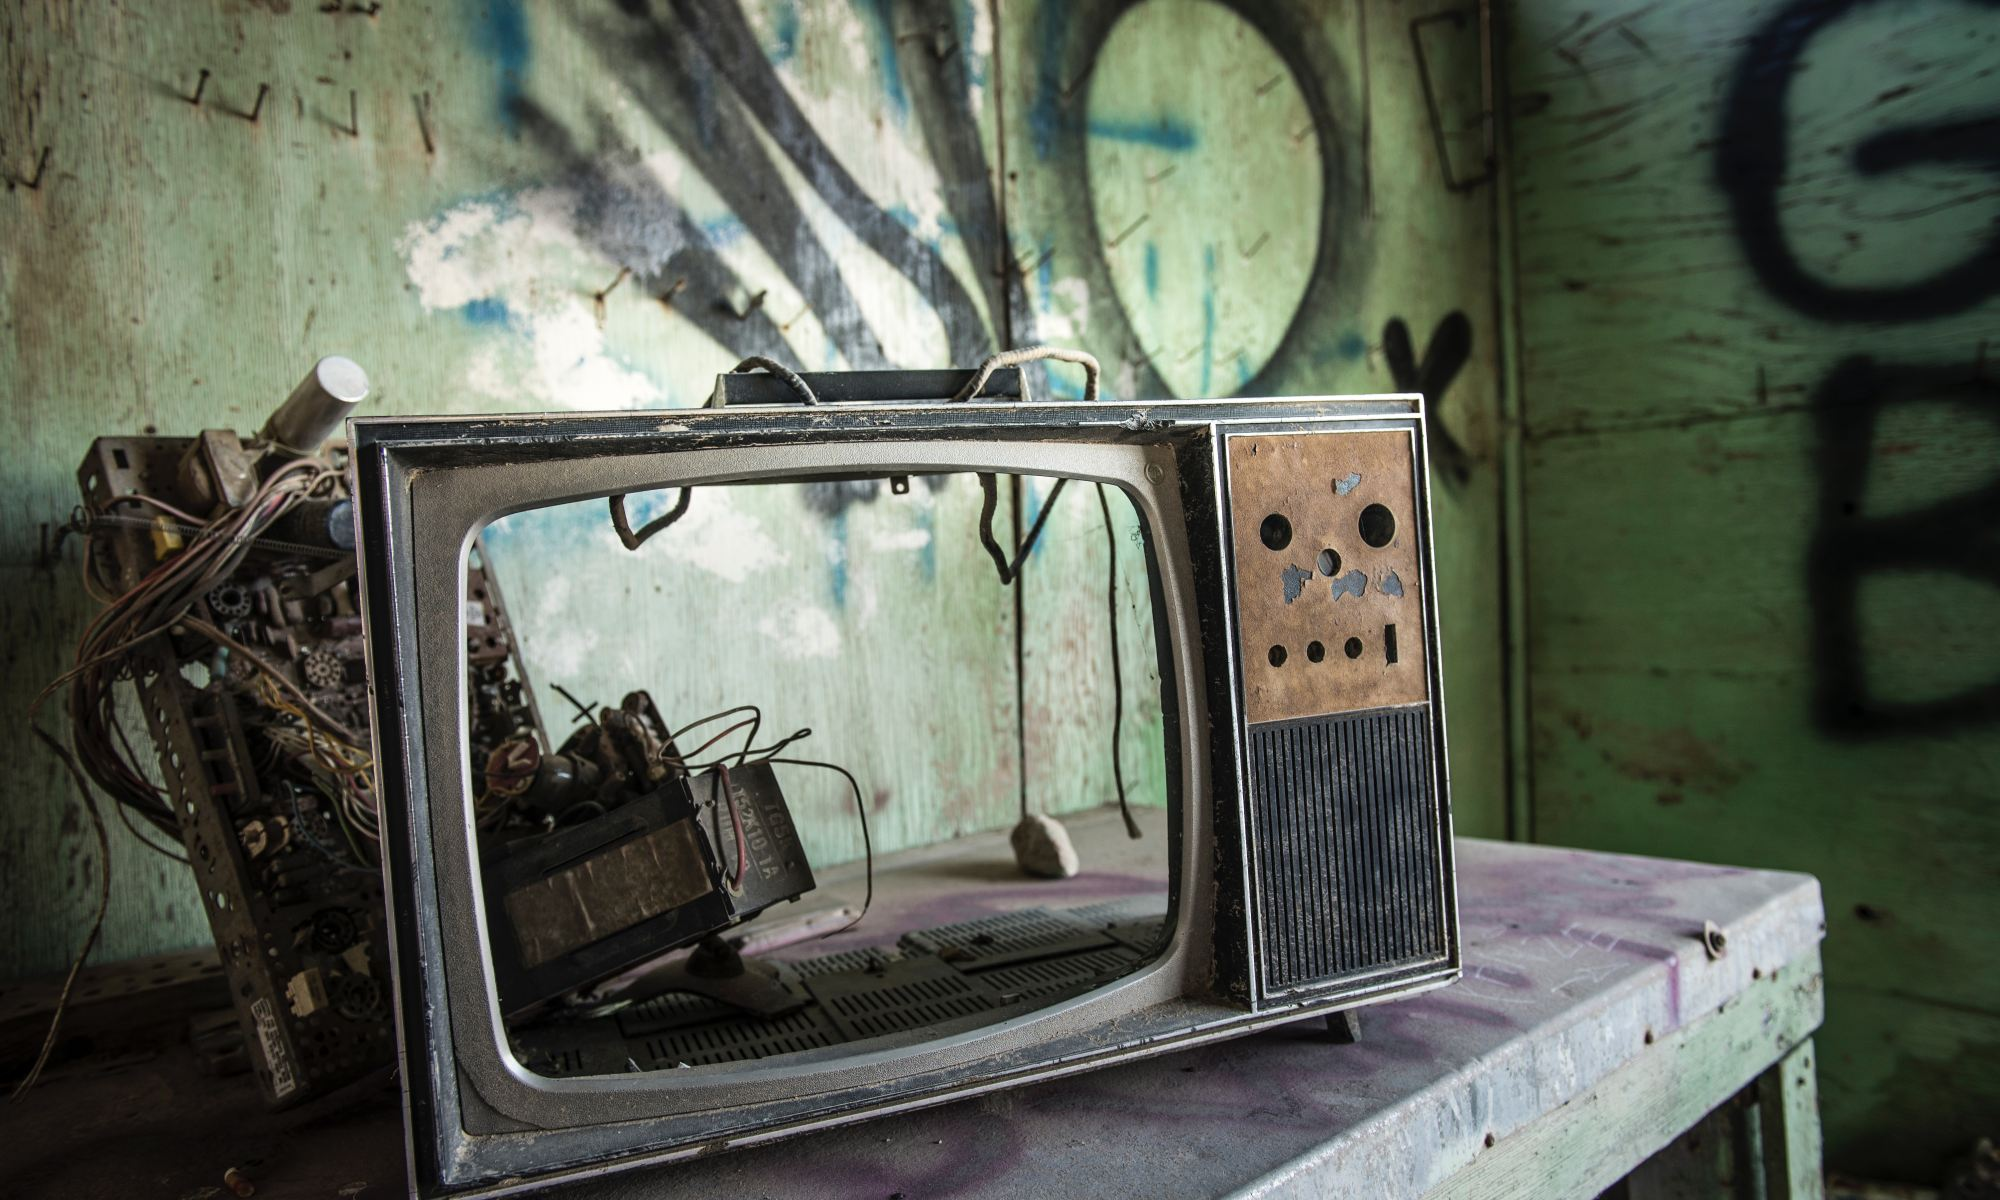 Broken vintage television on wooden table in front of graffiti-sprayed walls